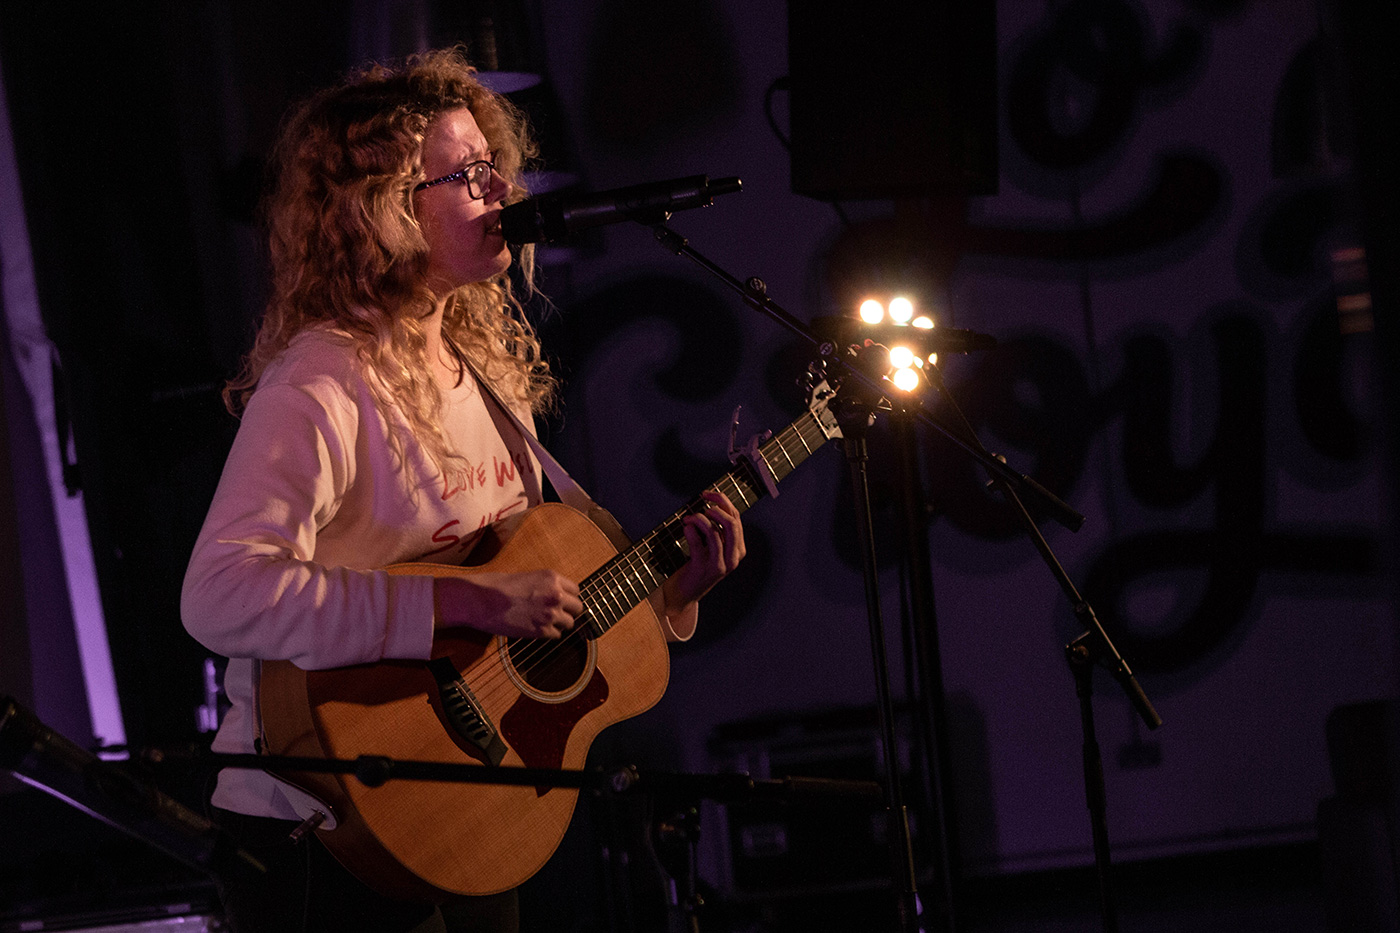 A female solo musician singing and playing the acoustic guitar